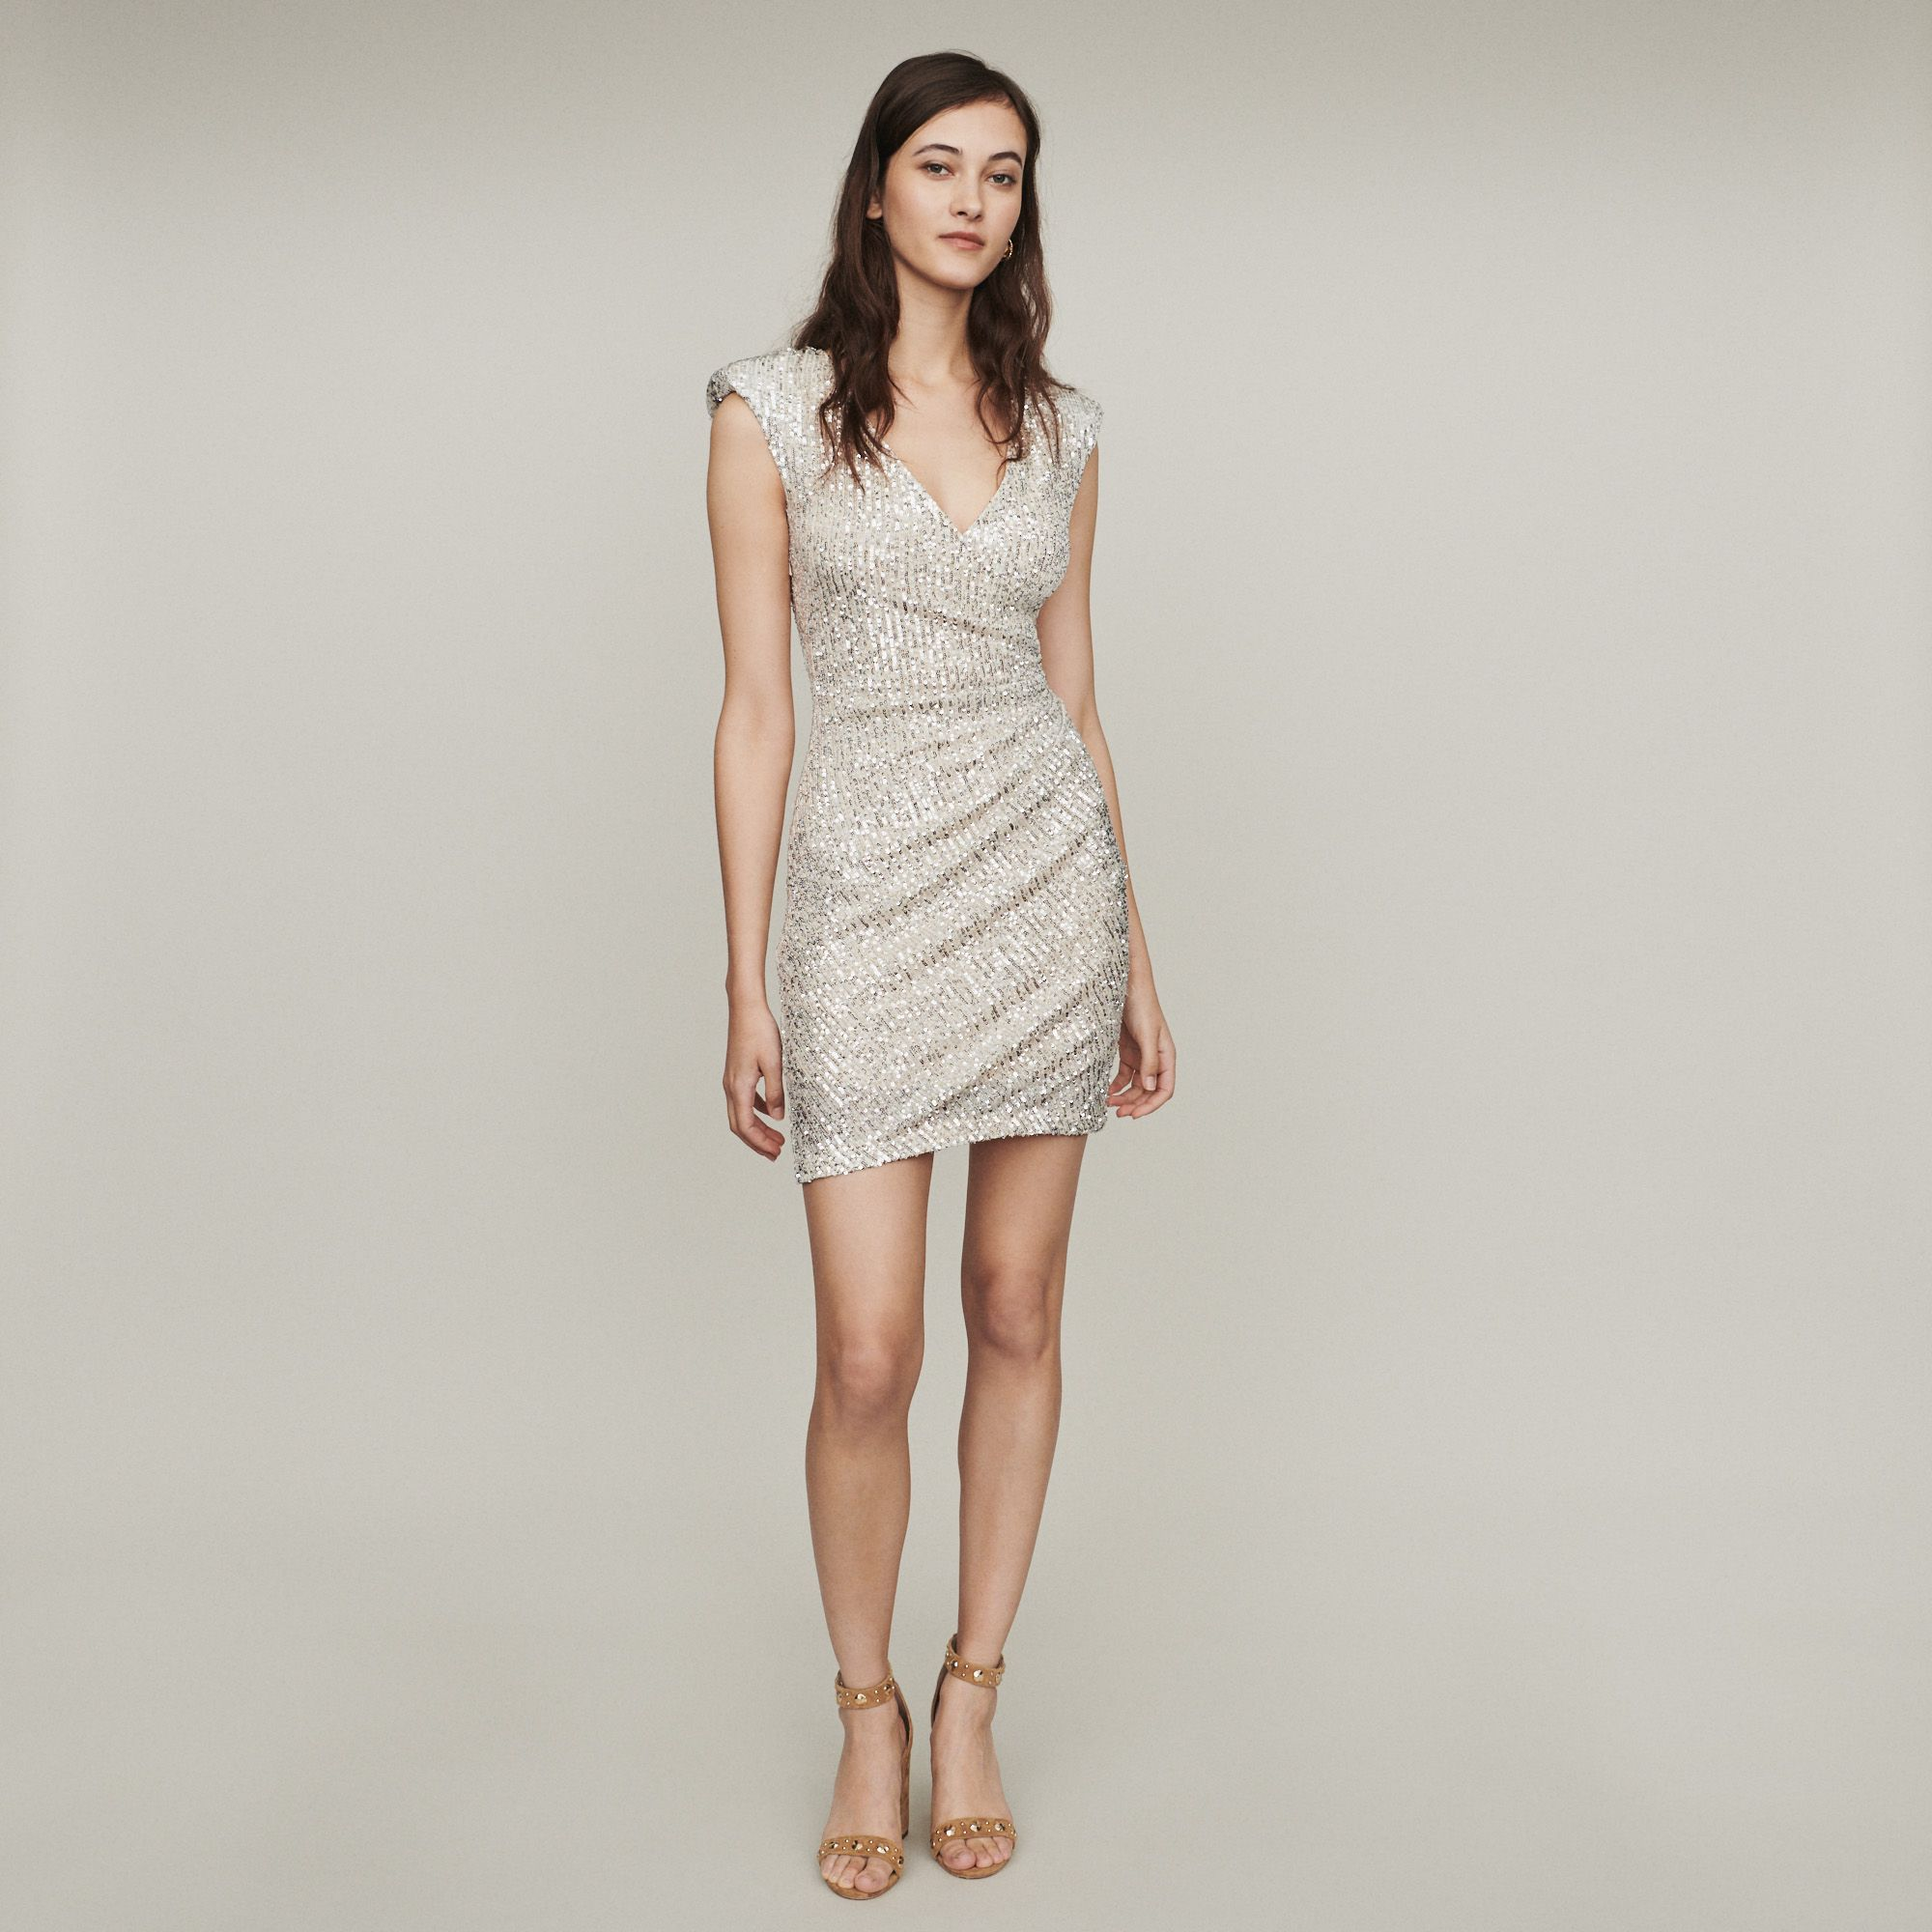 RIVIERA Sleeveless drape dress with sequins Dresses Maje